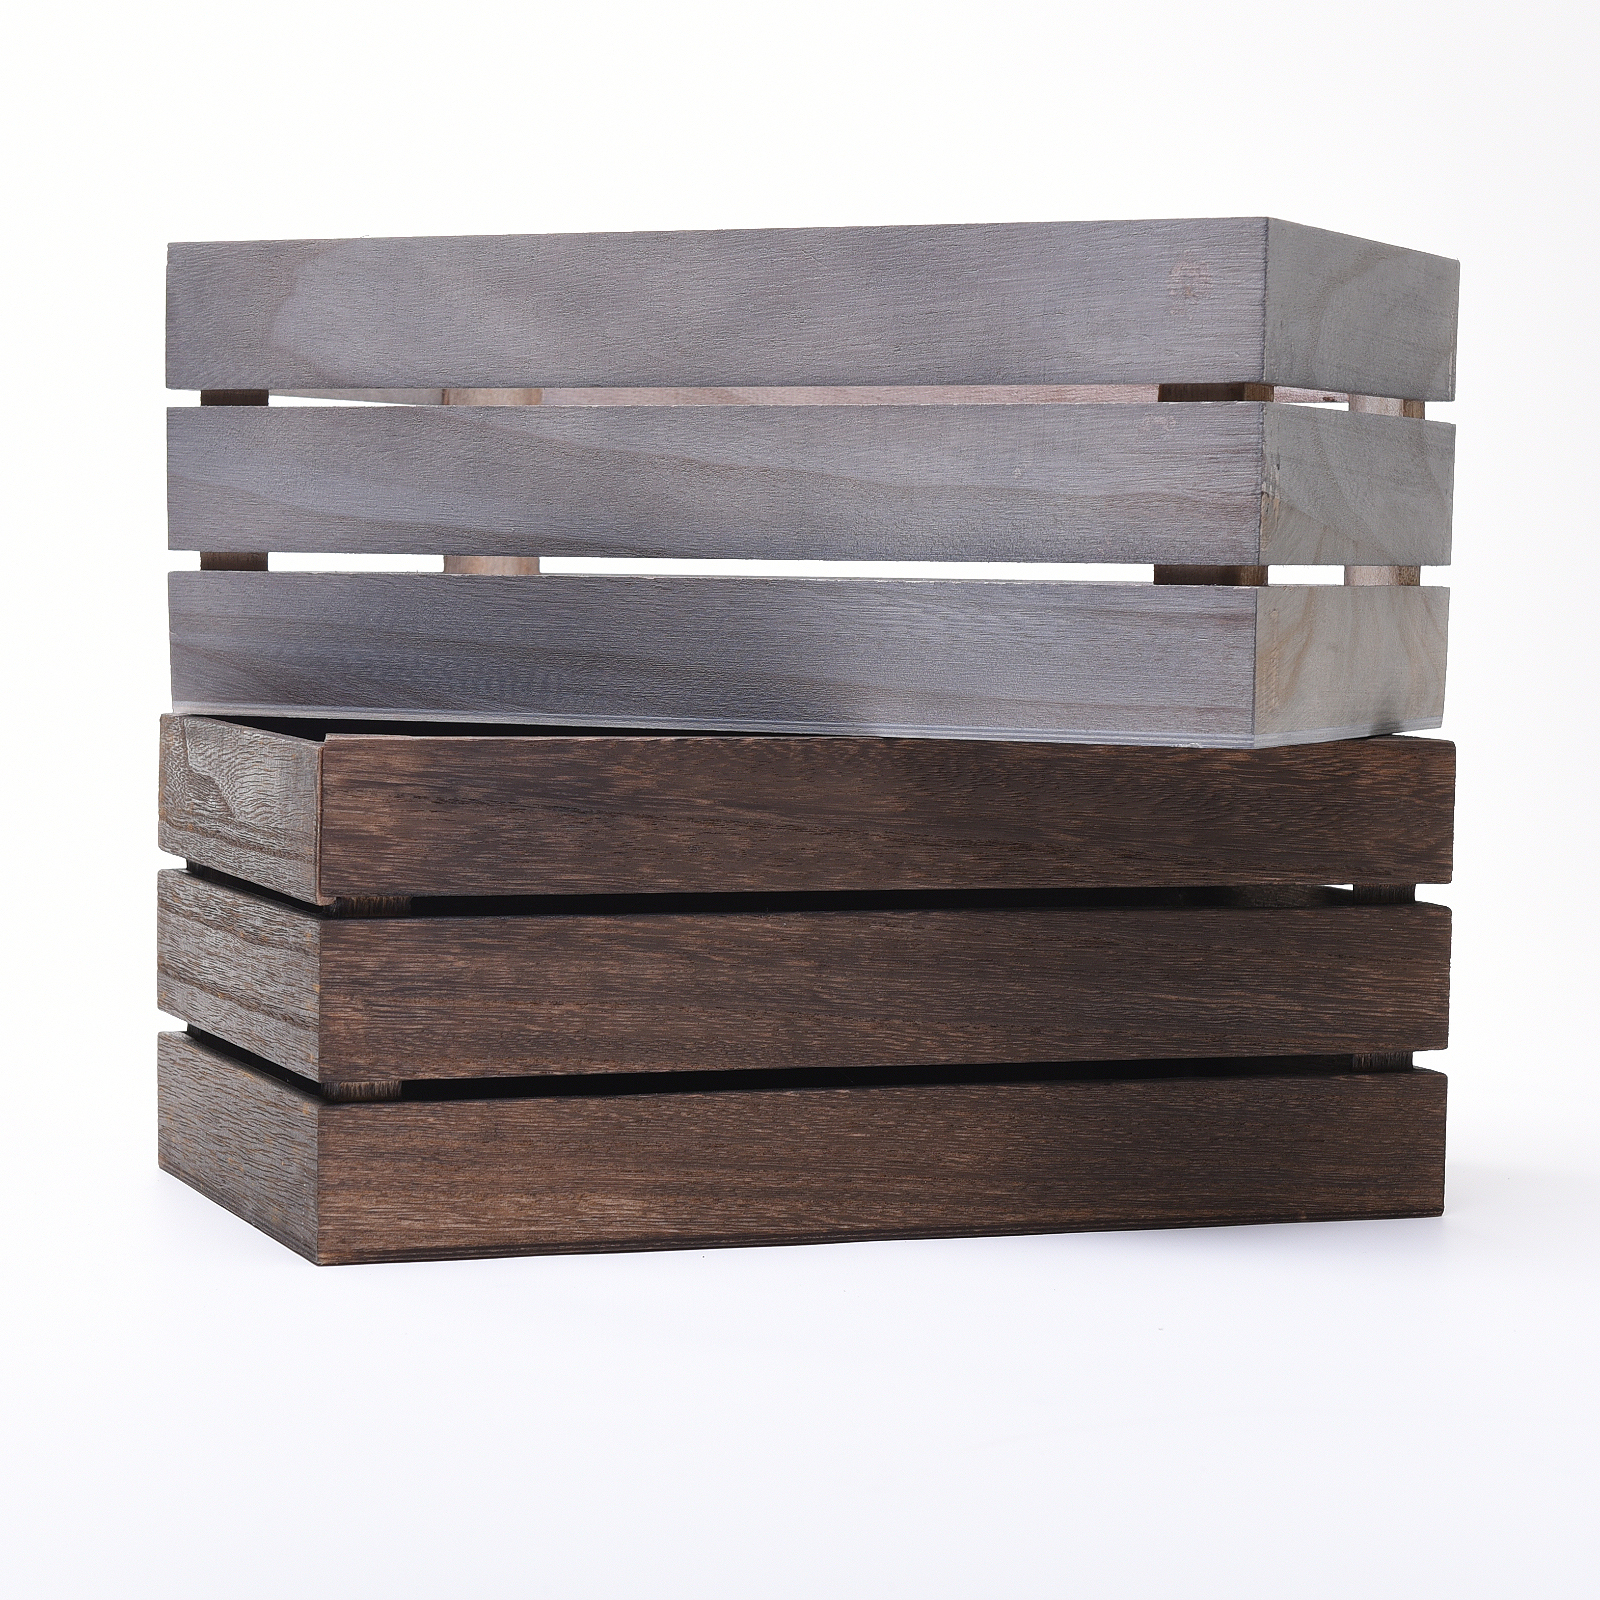 Wooden Crates, Apple Boxes & Planters